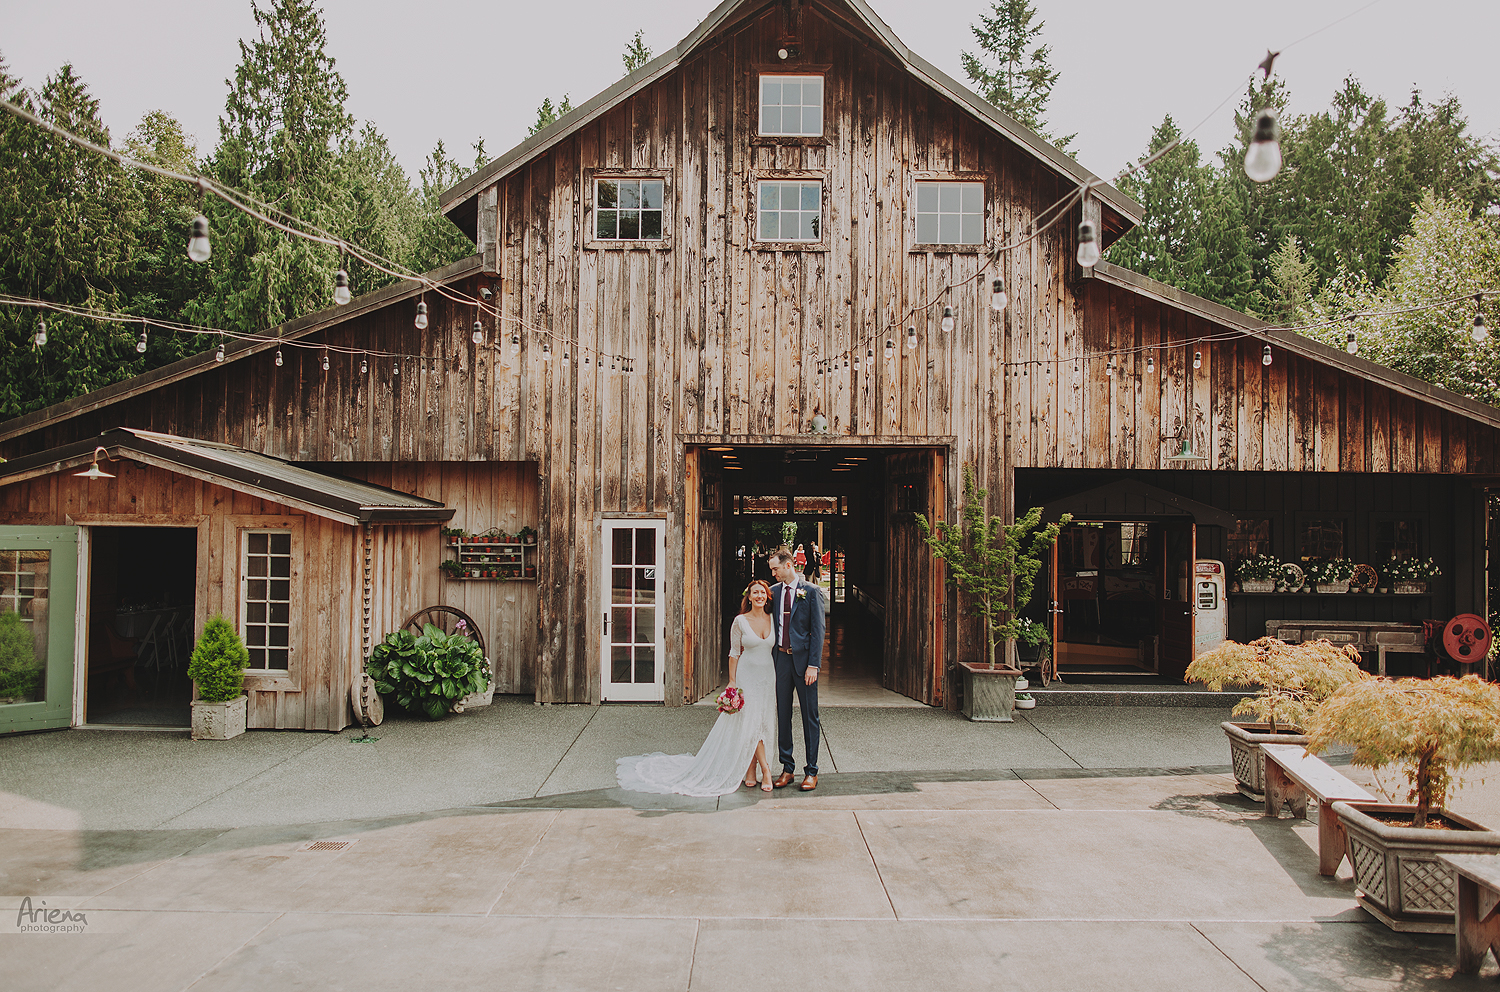 Red Cedar Farm elegant wedding. Sunny summer day on Bainbridge Island PNW